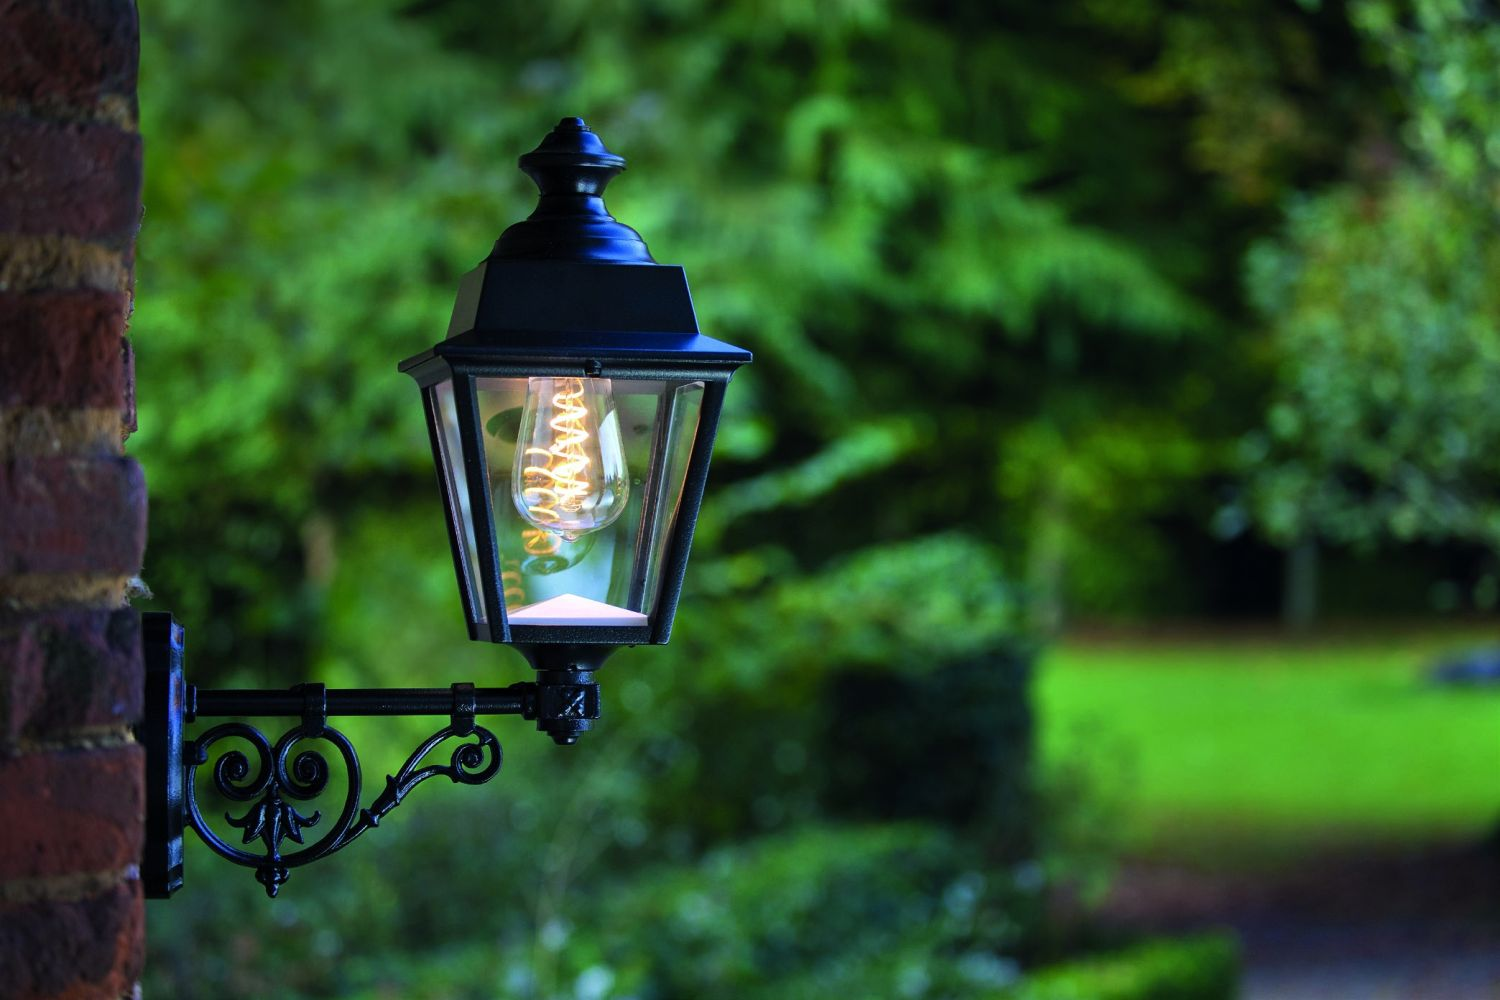 Artisan Roger Pradier - Chenonceau - Lighting Appliances - Outdoor